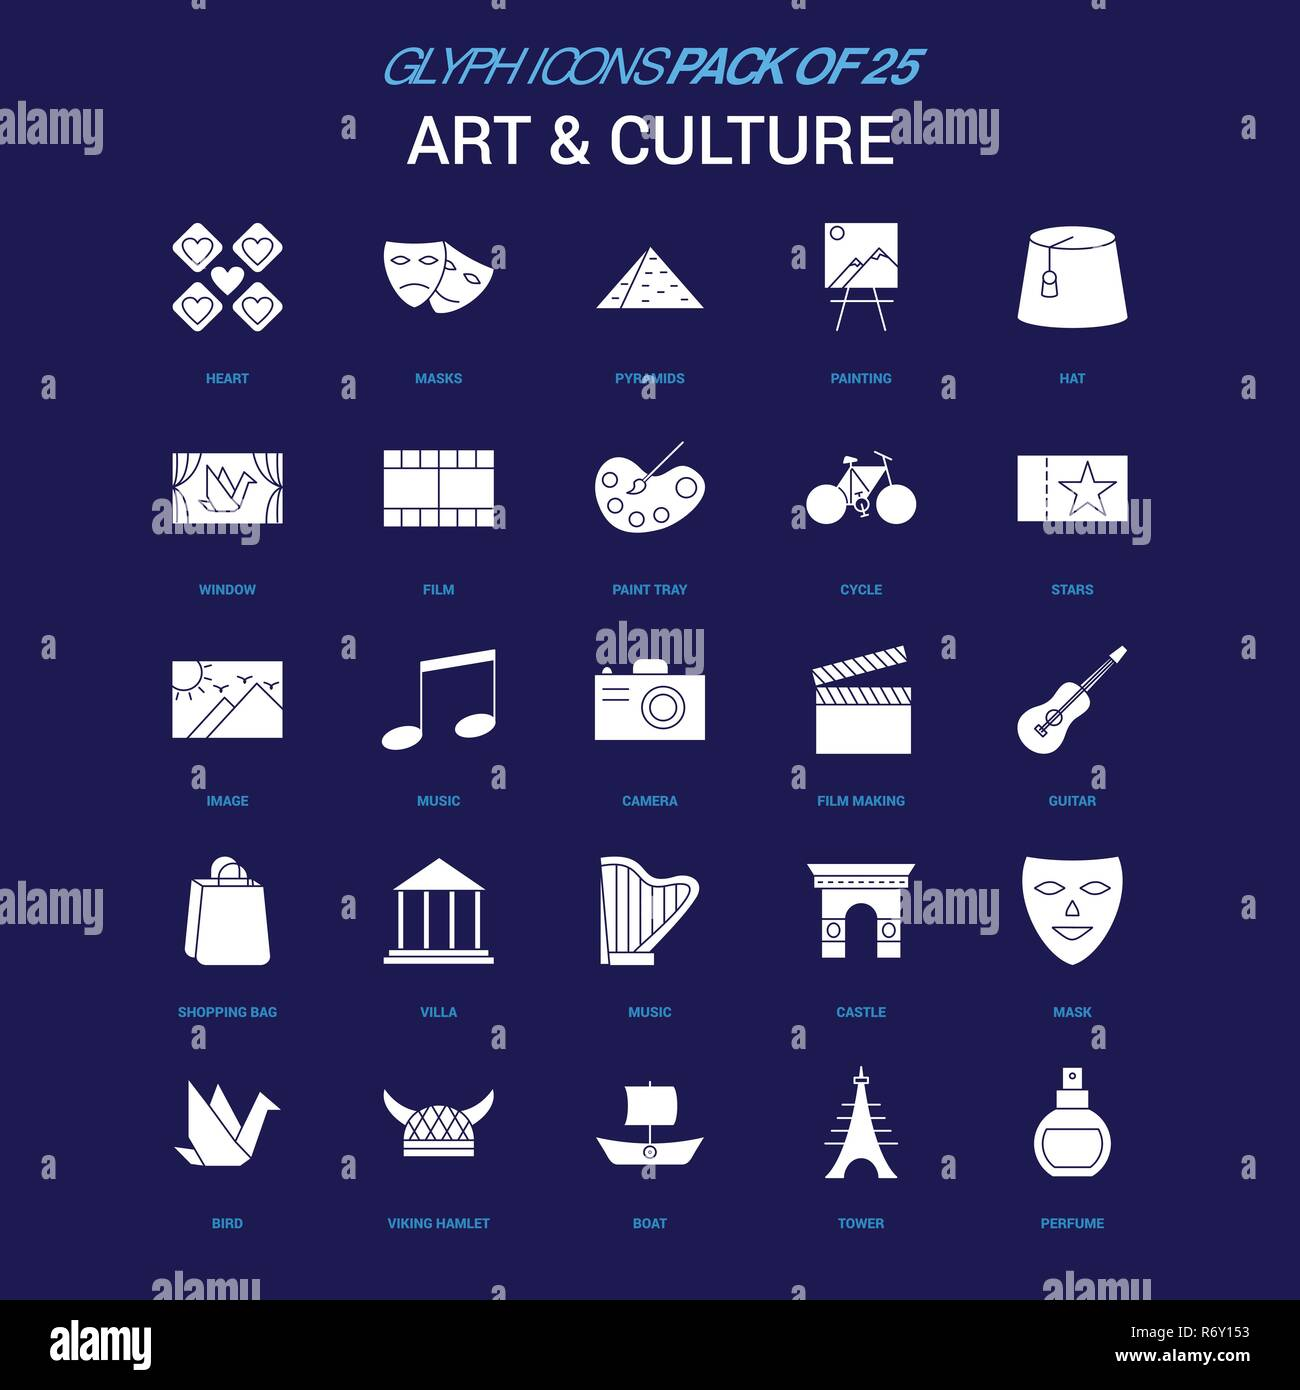 Art and Culture White icon over Blue background. 25 Icon Pack - Stock Vector